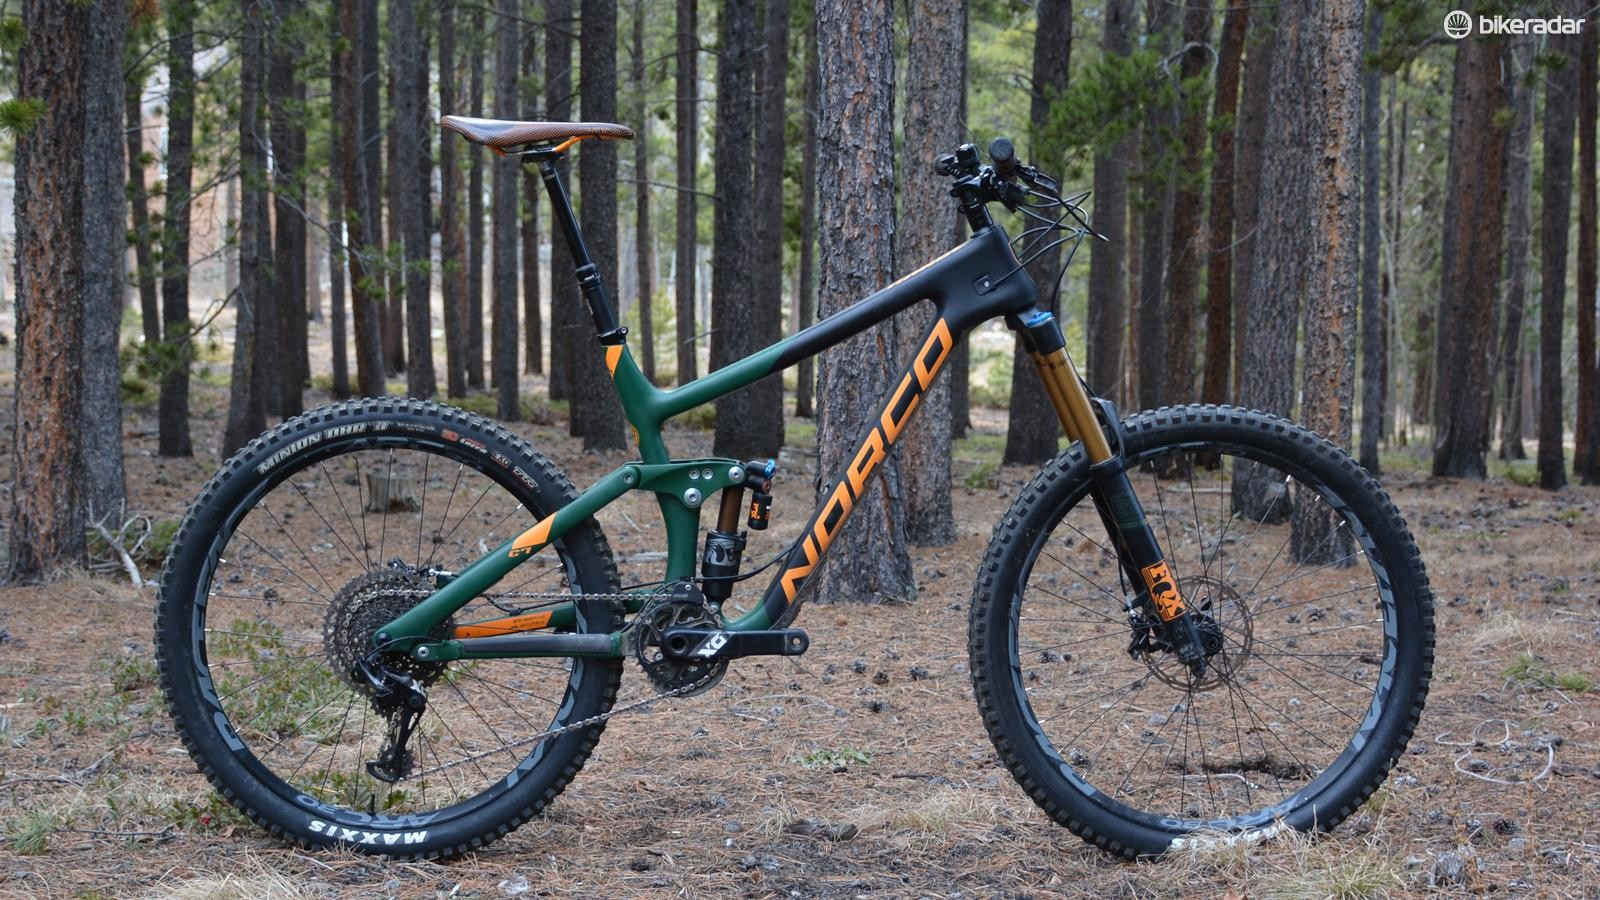 Norco's Range C7.1 is a British Columbia-bred enduro smasher